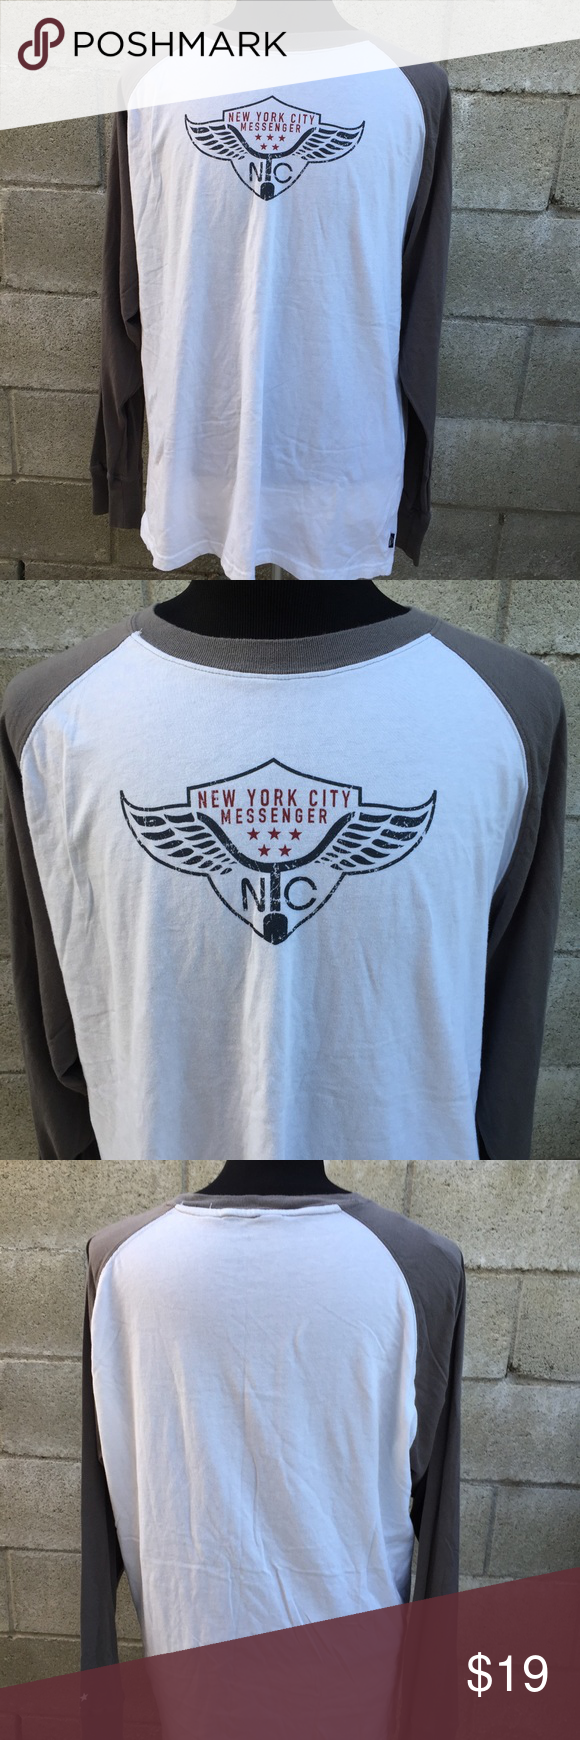 New York City Messenger Baseball T-shirt XXL New York City Messenger Baseball style T-shirt XXL grey sleeves. Gently used in good condition. See measurements in pics. Five Star Shirts Tees - Long Sleeve